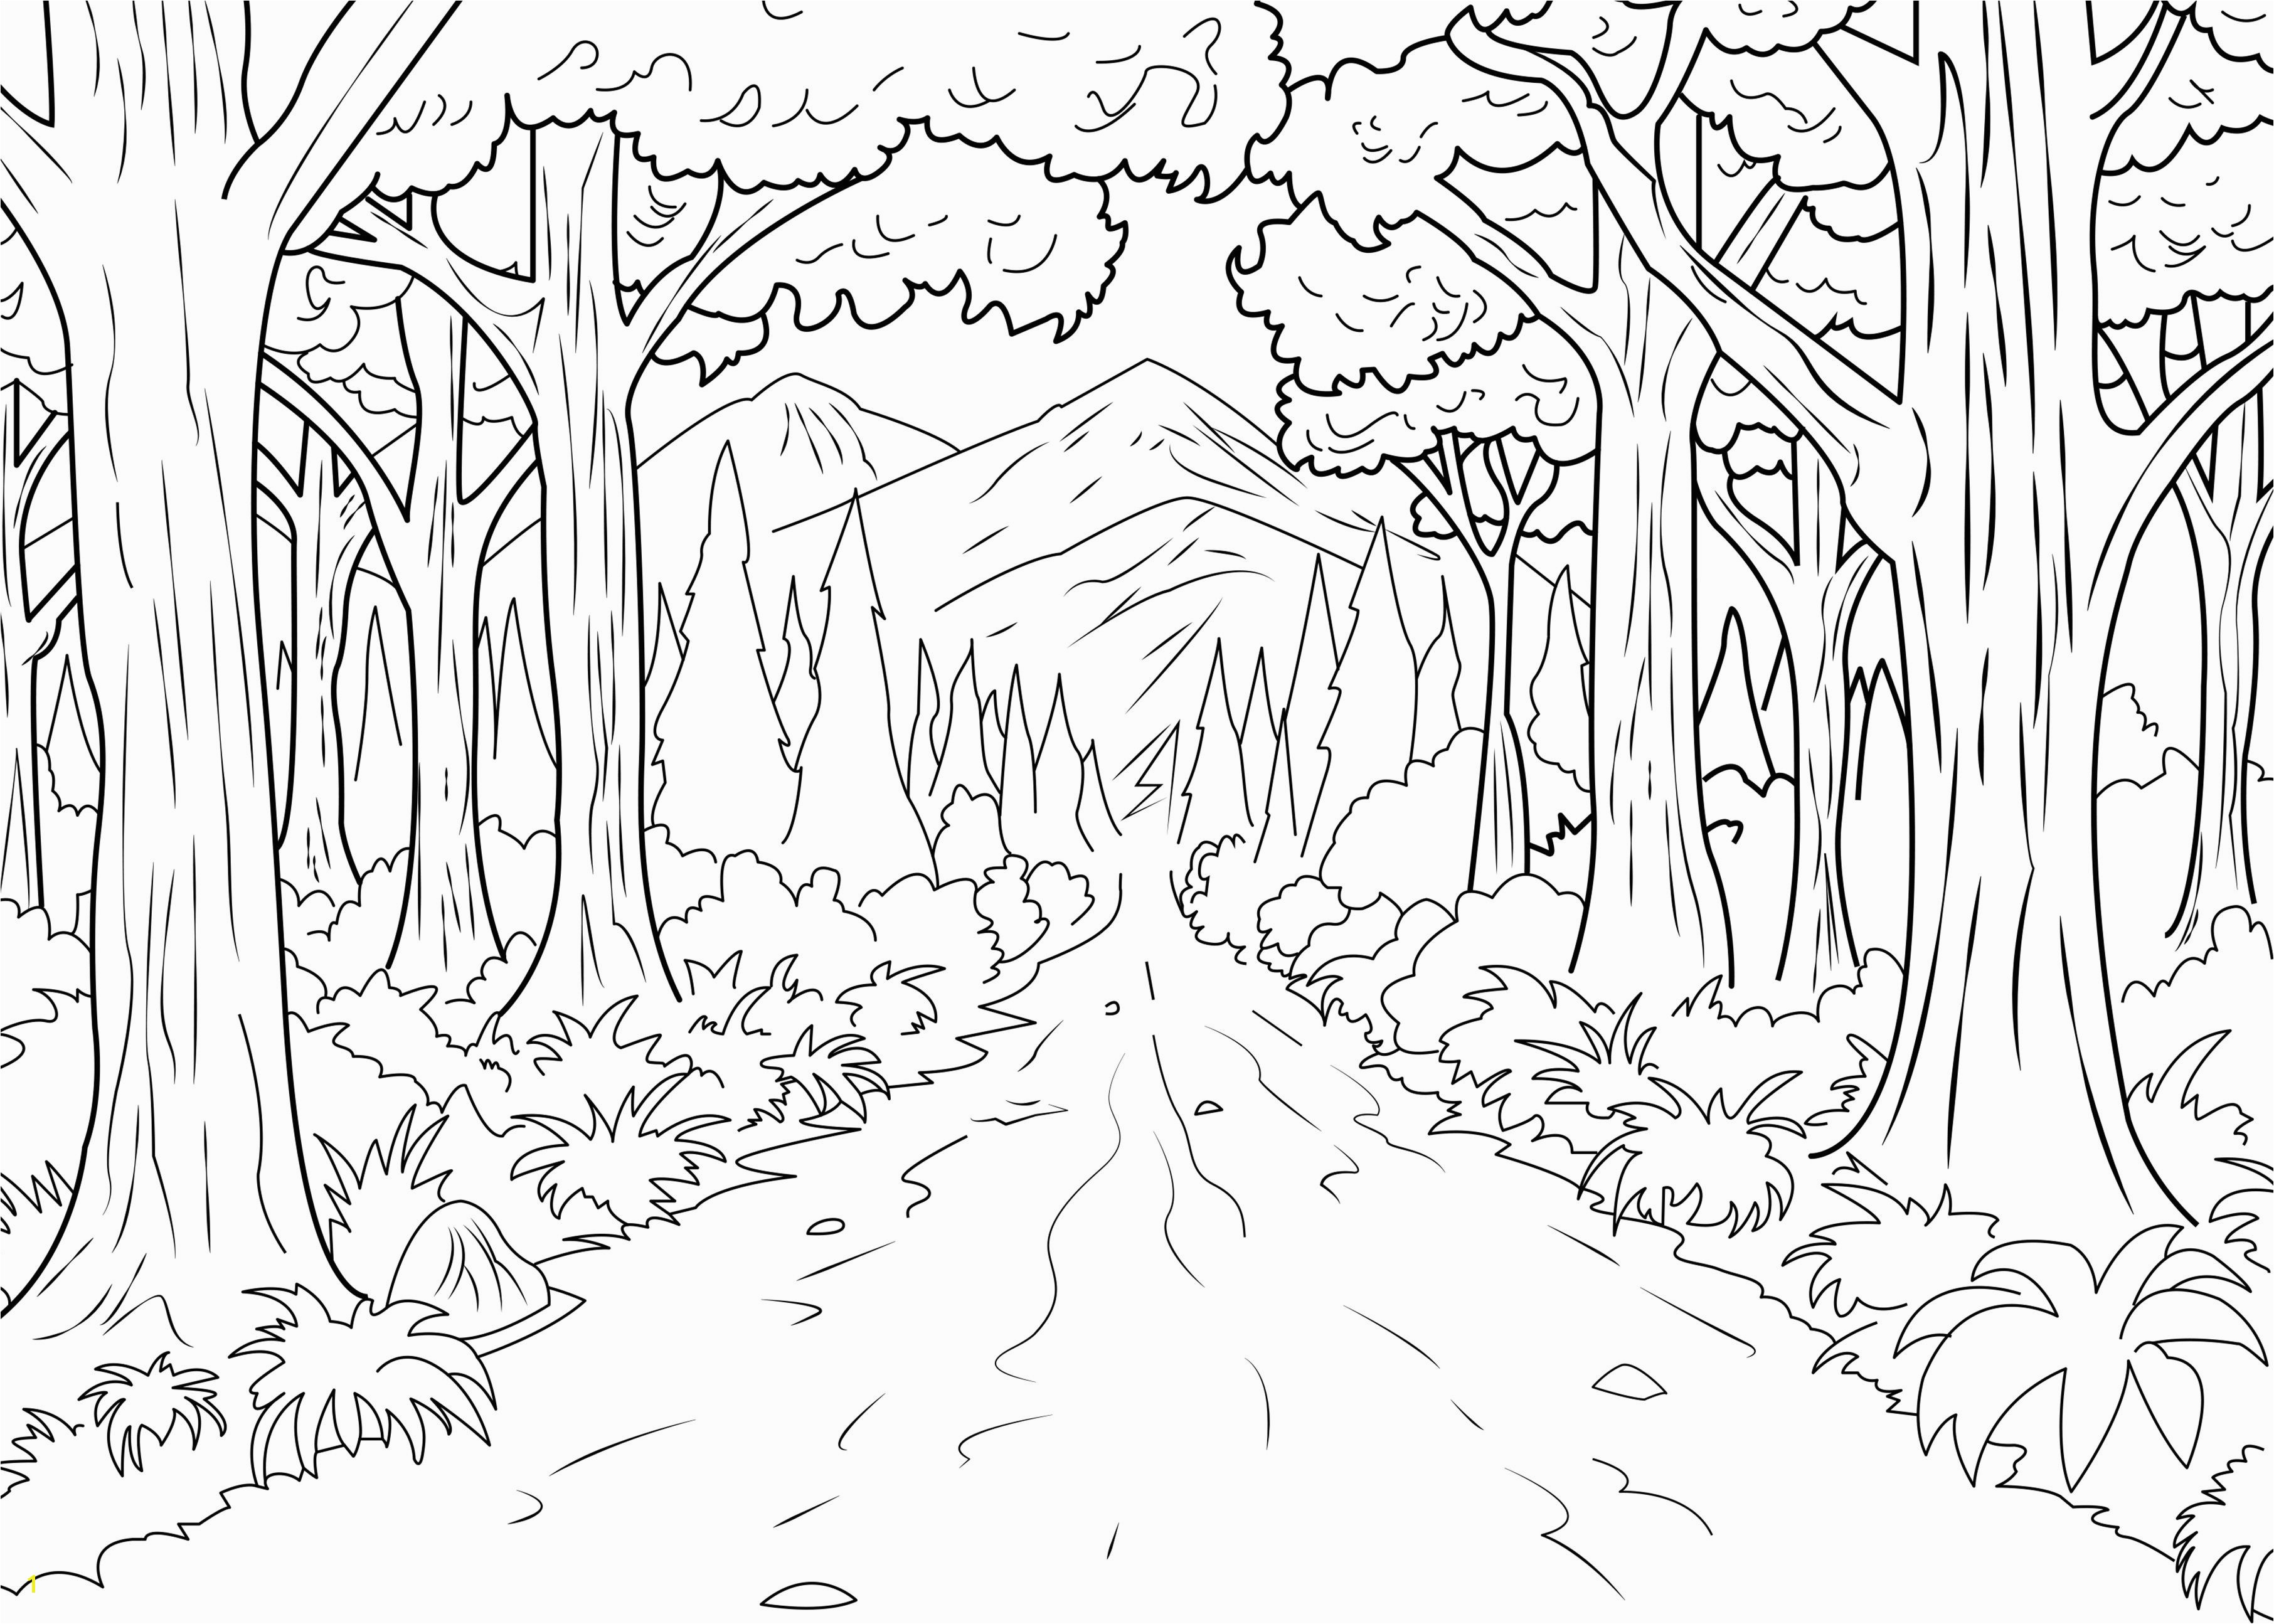 A coloring page of forest made by Celine From the gallery Jungle & Forest Artist Celine